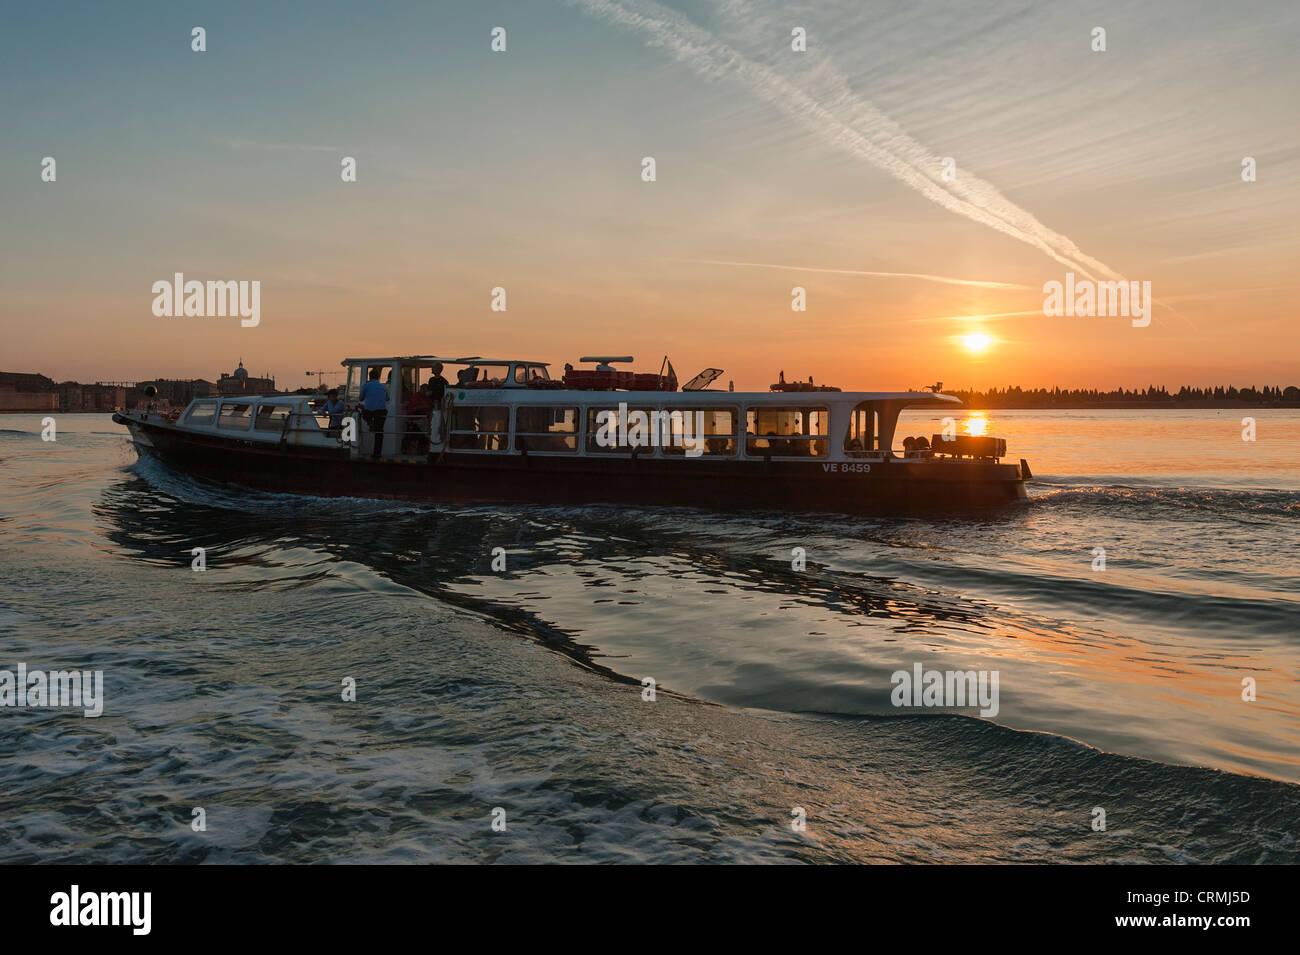 A valporetto or water bus crossing the Venice Lagoon at sunset - Stock Image